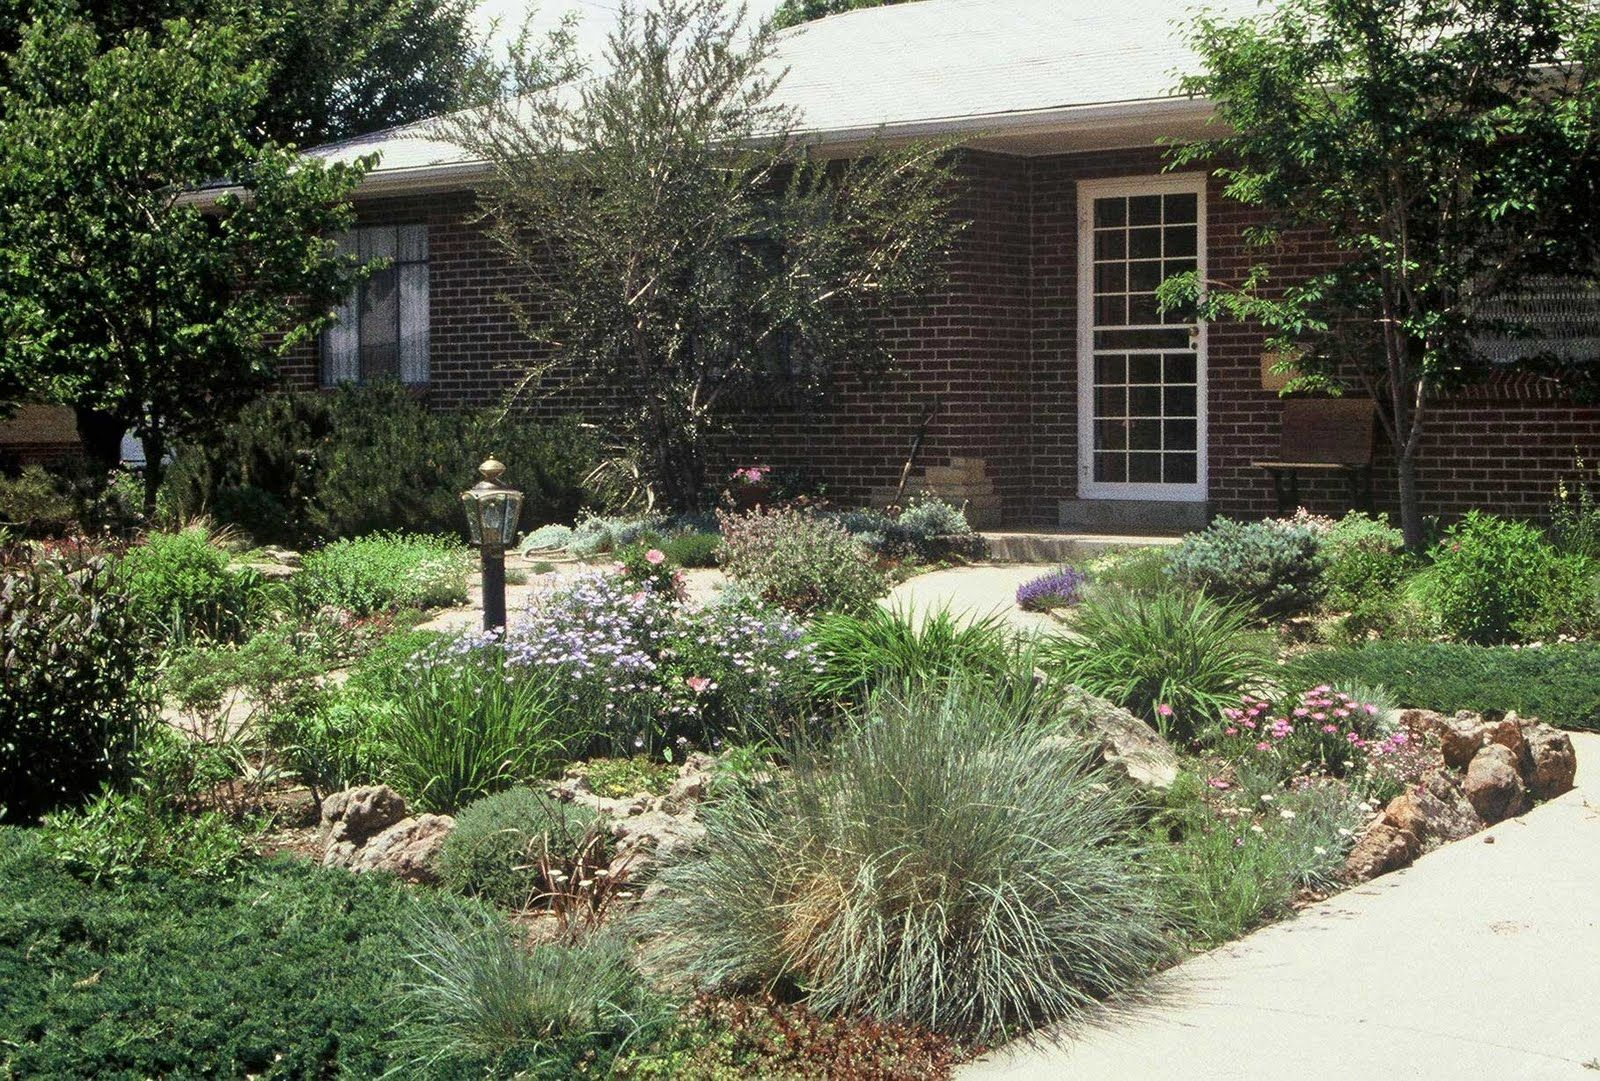 Front Yard Without Grass   Home Design and Decor Reviews ... on Backyard Landscaping Ideas No Grass id=71194